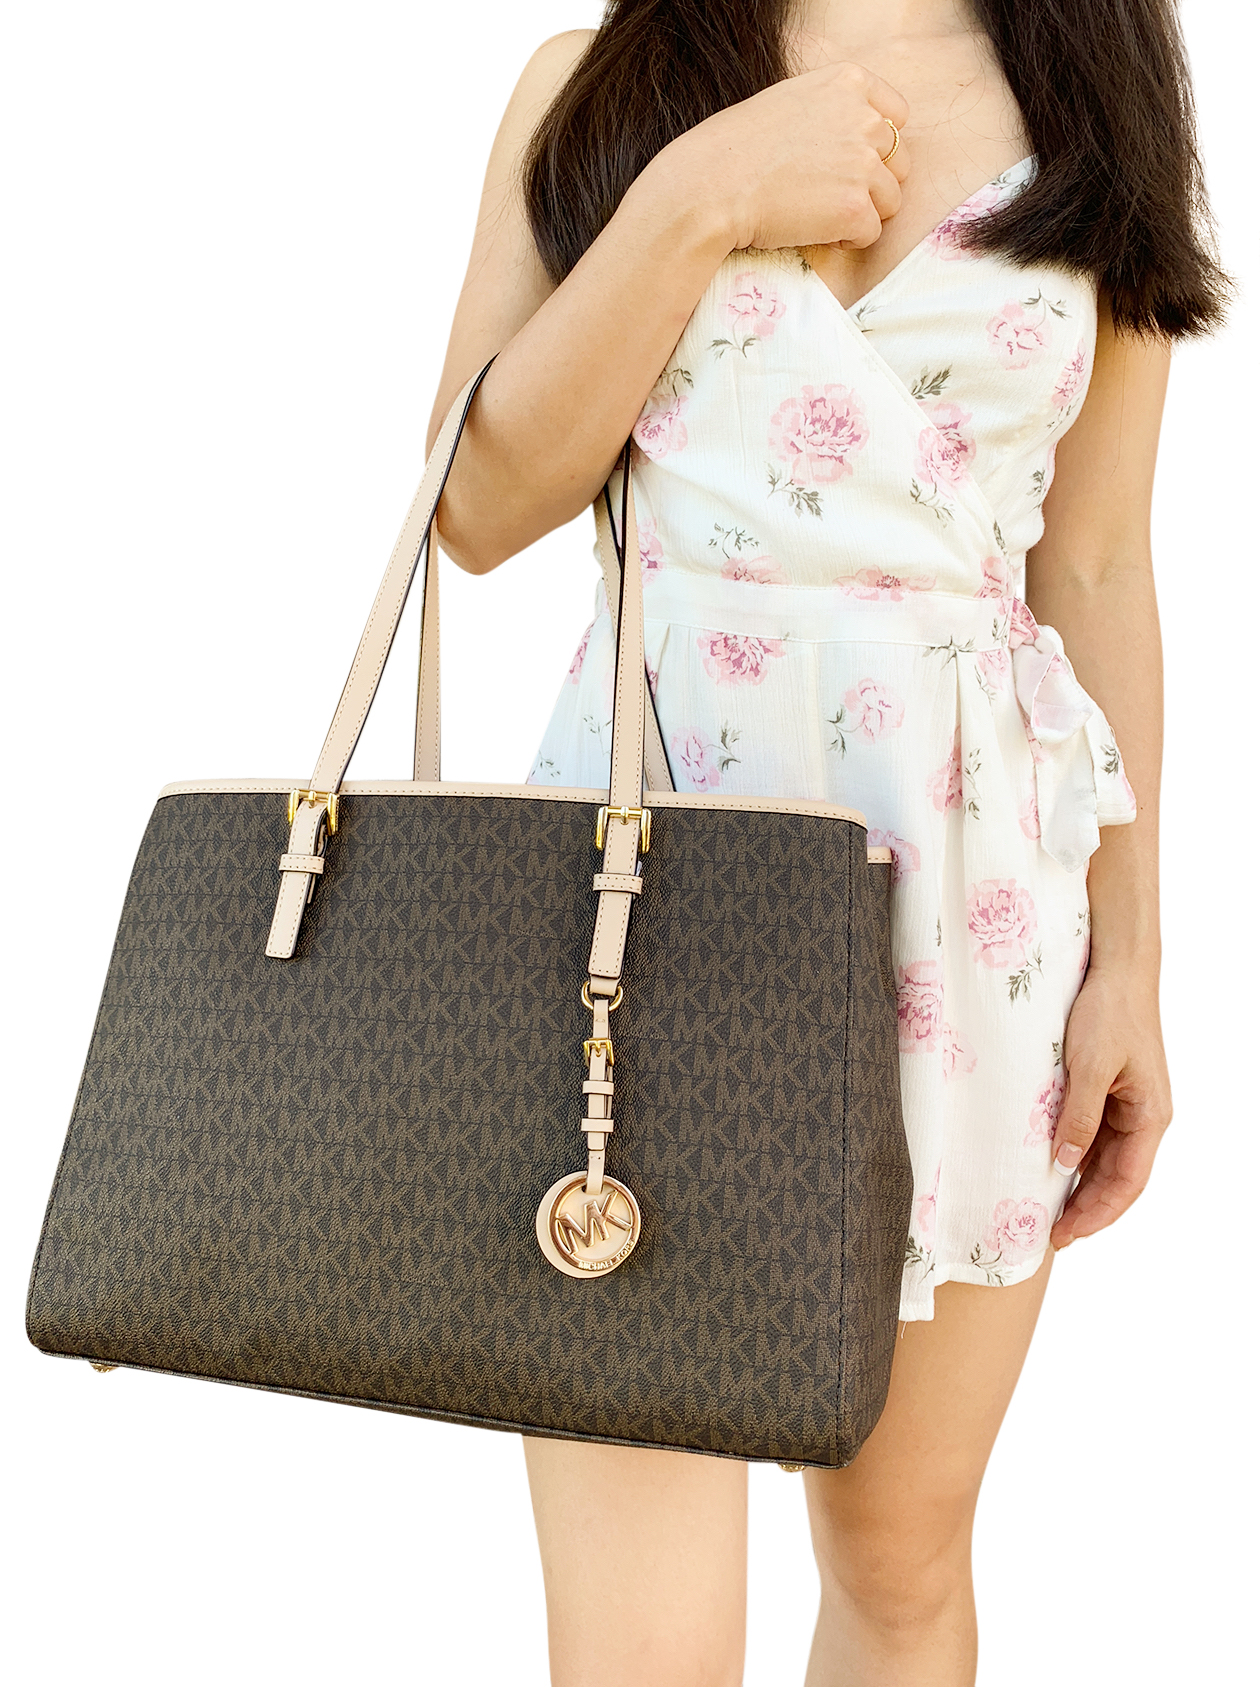 a47555547 Michael Kors Jet Set Travel Large East West Tote Brown Mk Signature ...